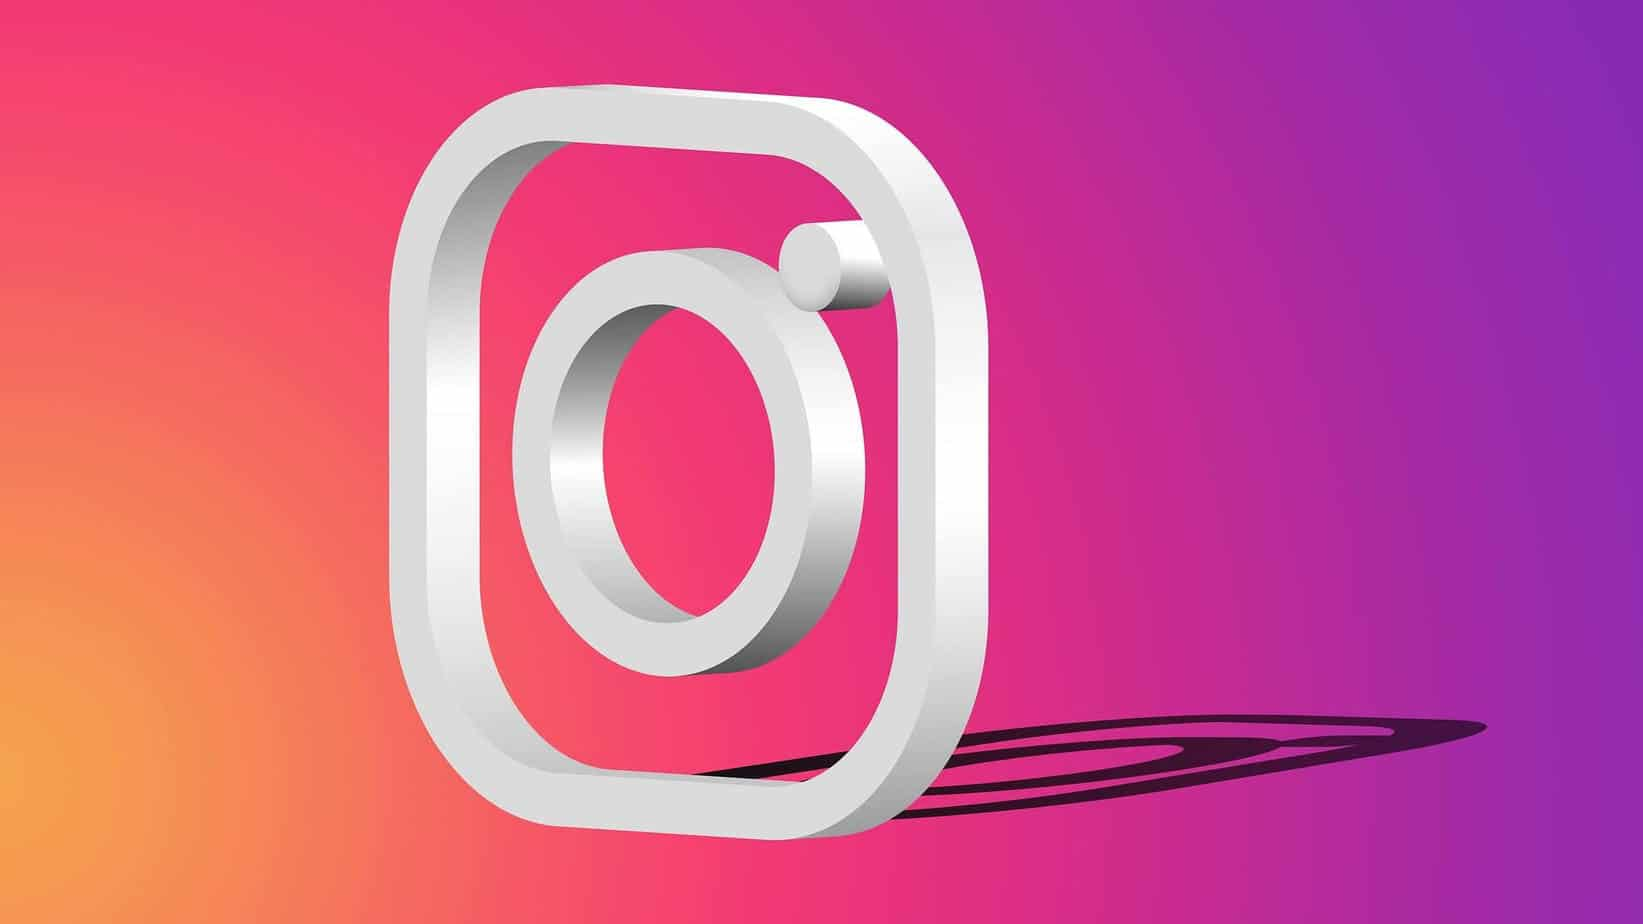 Instagram's algorithm pushes users towards COVID-19 misinformation